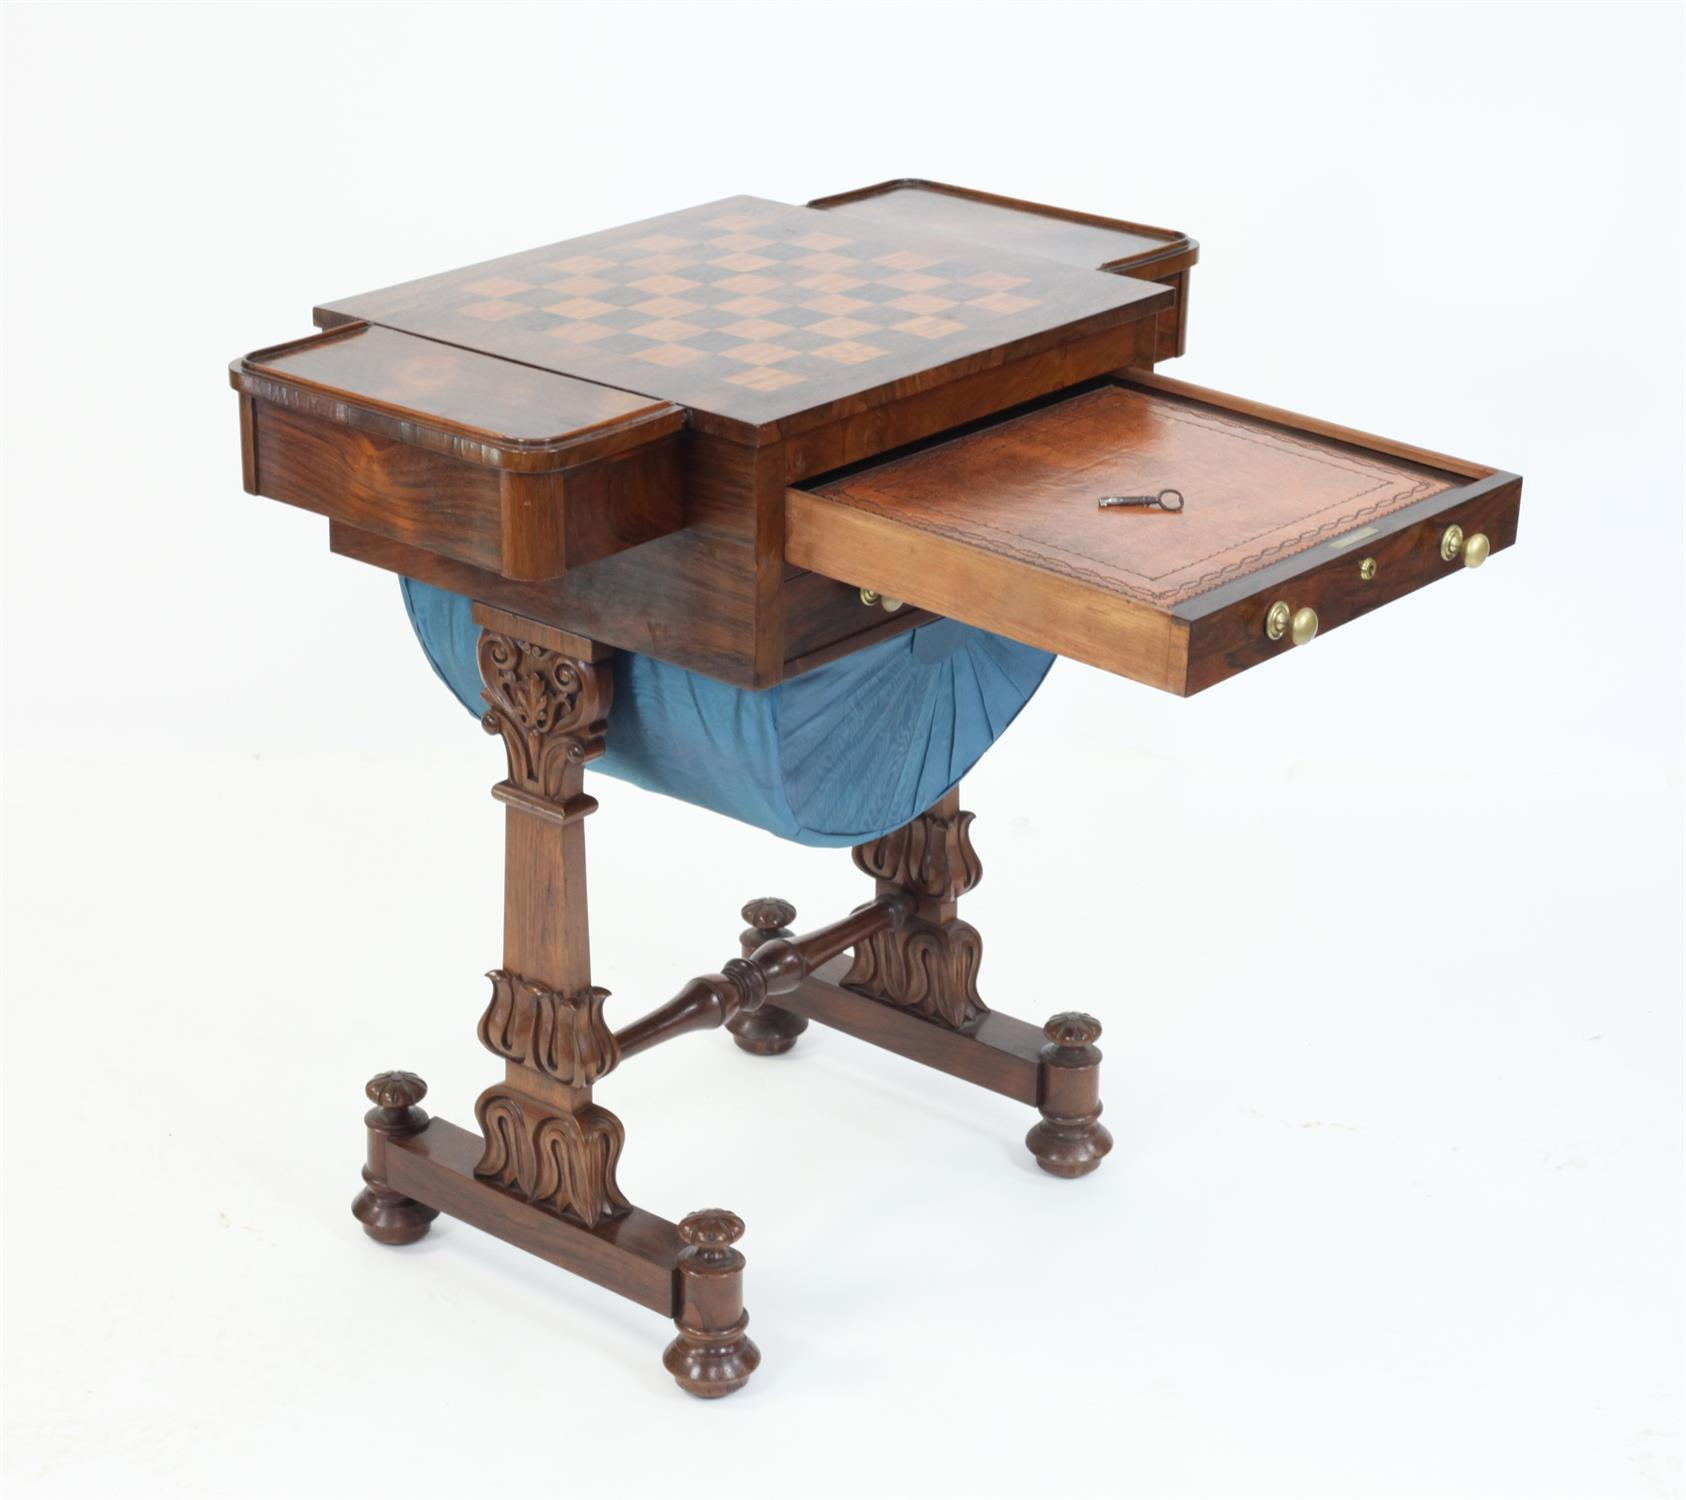 Early 19th Century rosewood games and work table with chessboard top flanked by drawers over - Image 4 of 5